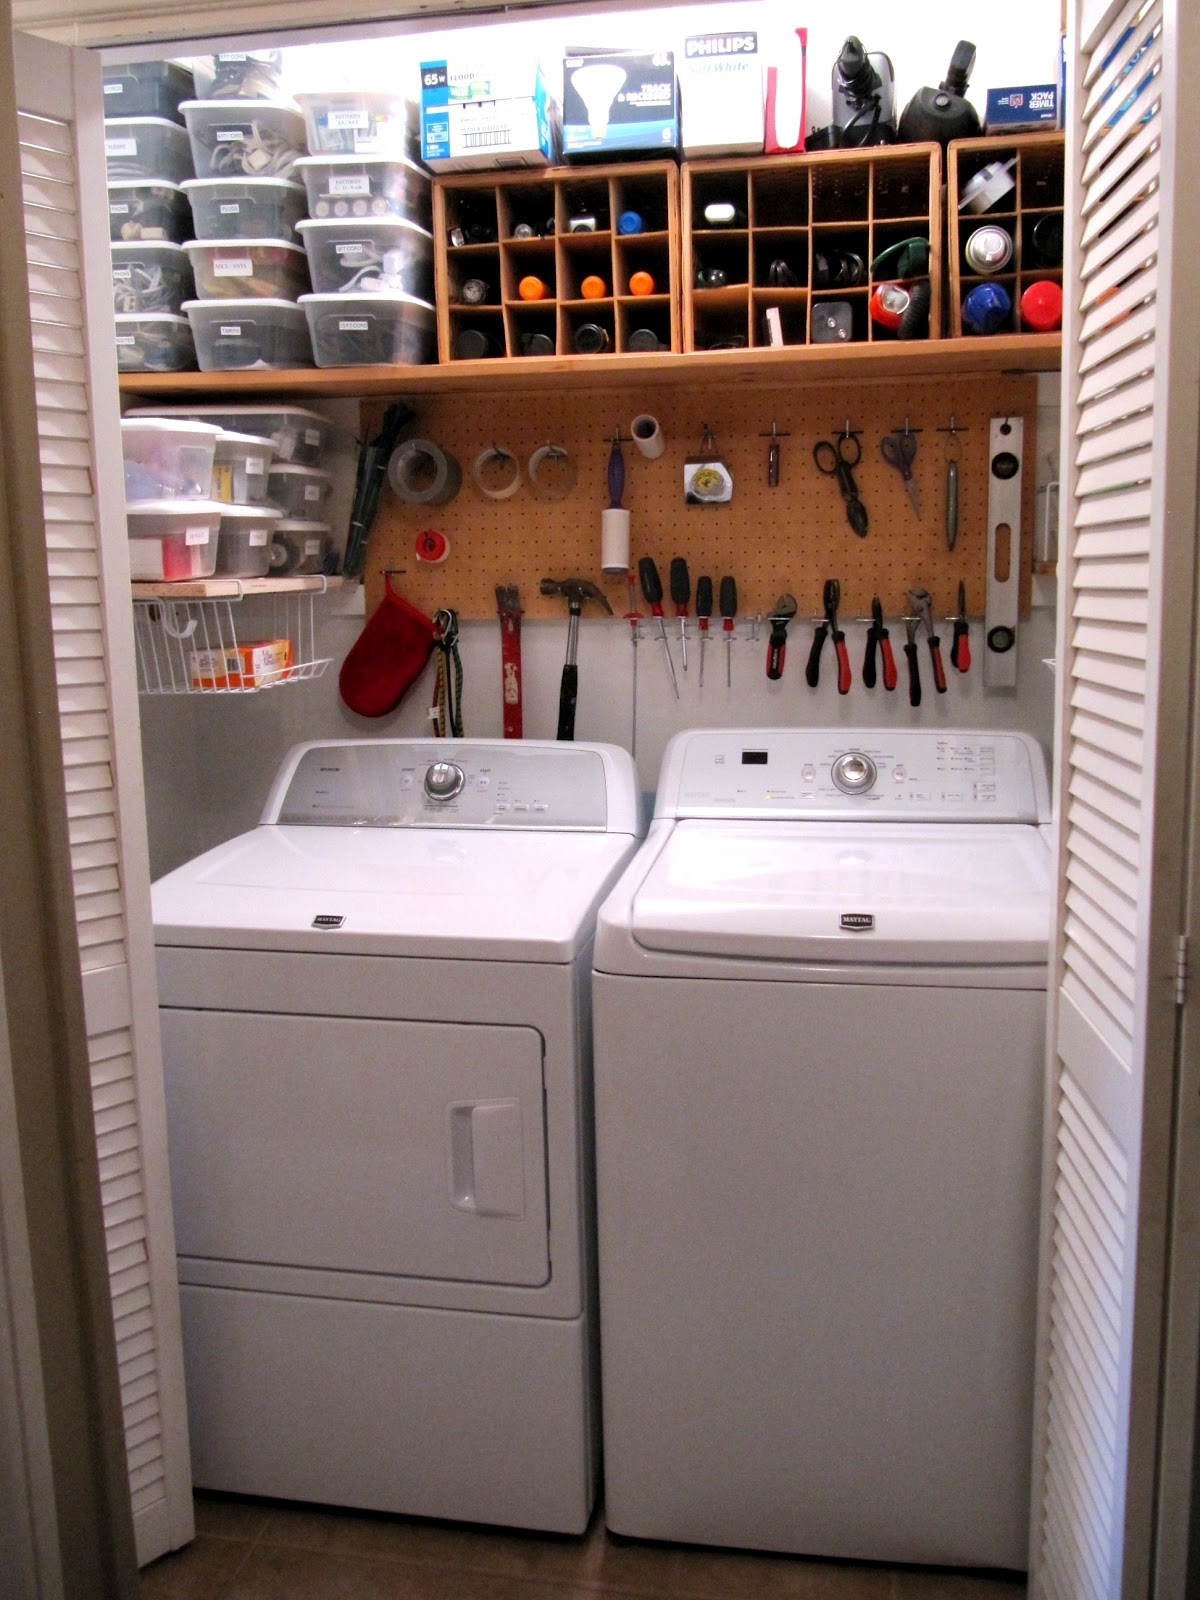 How's your laundry room, closet, area doing?